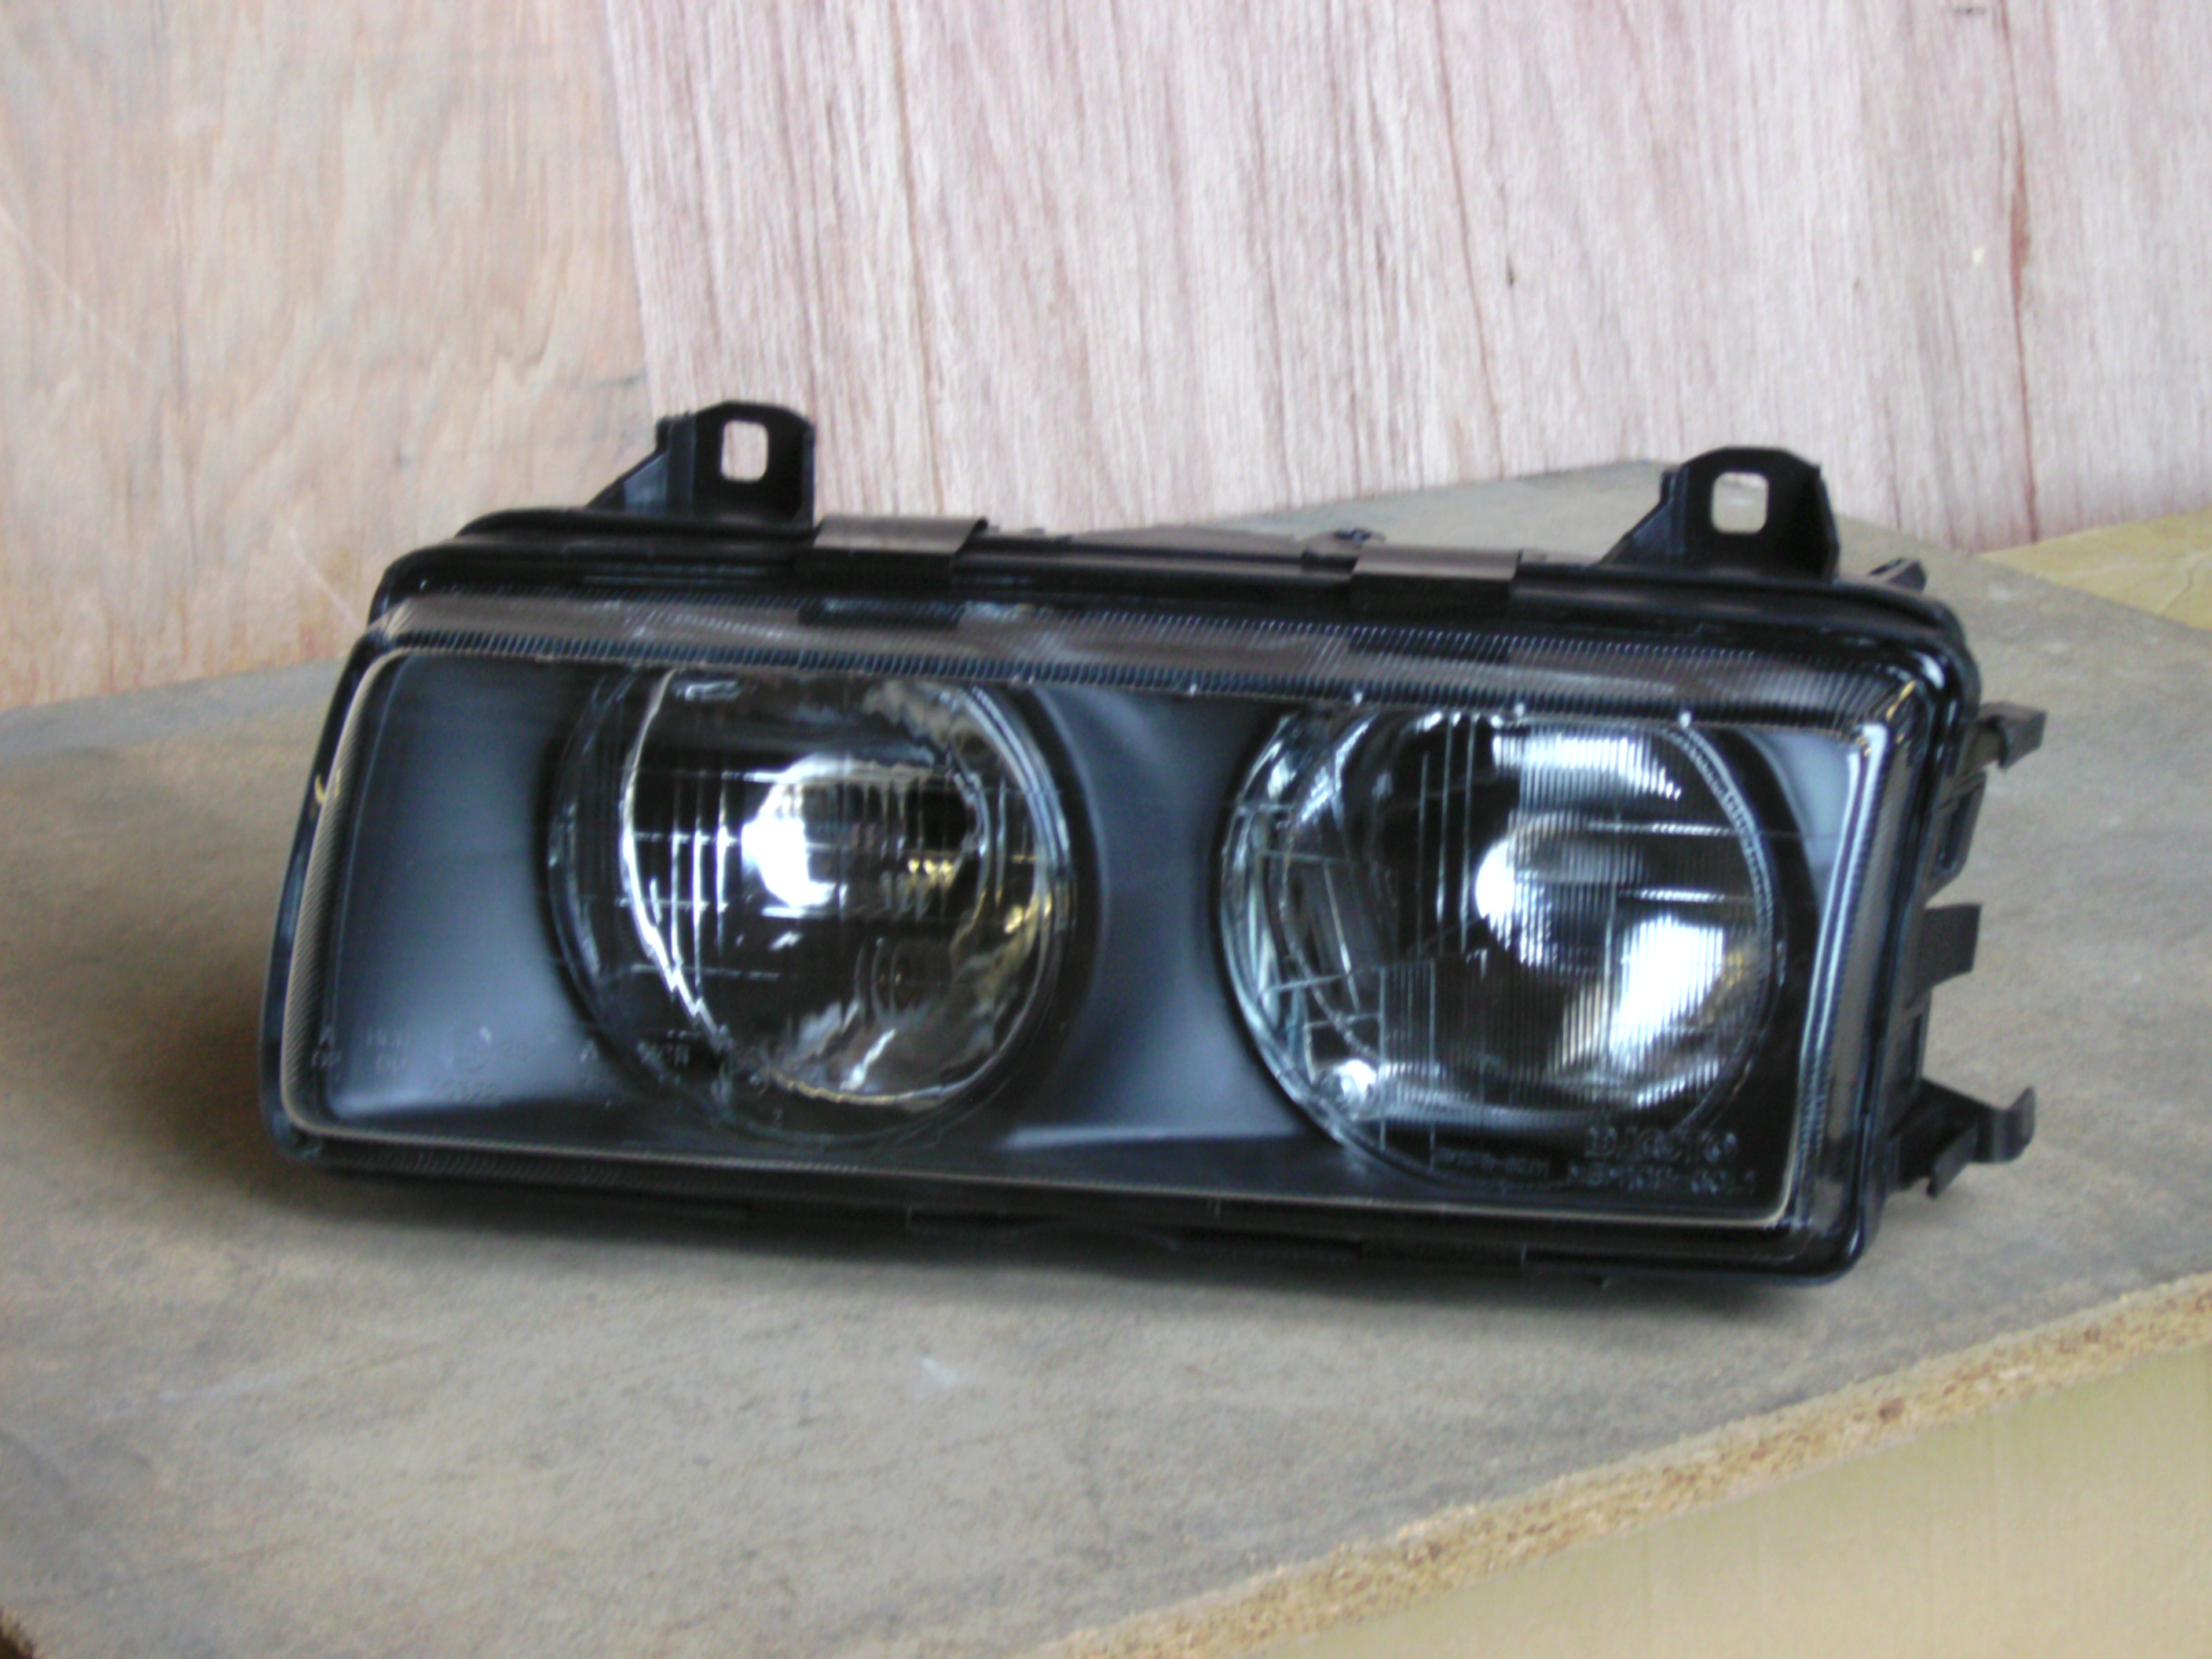 SKODA Felicia 1994-1998 Headlight Front Lamp RIGHT RH